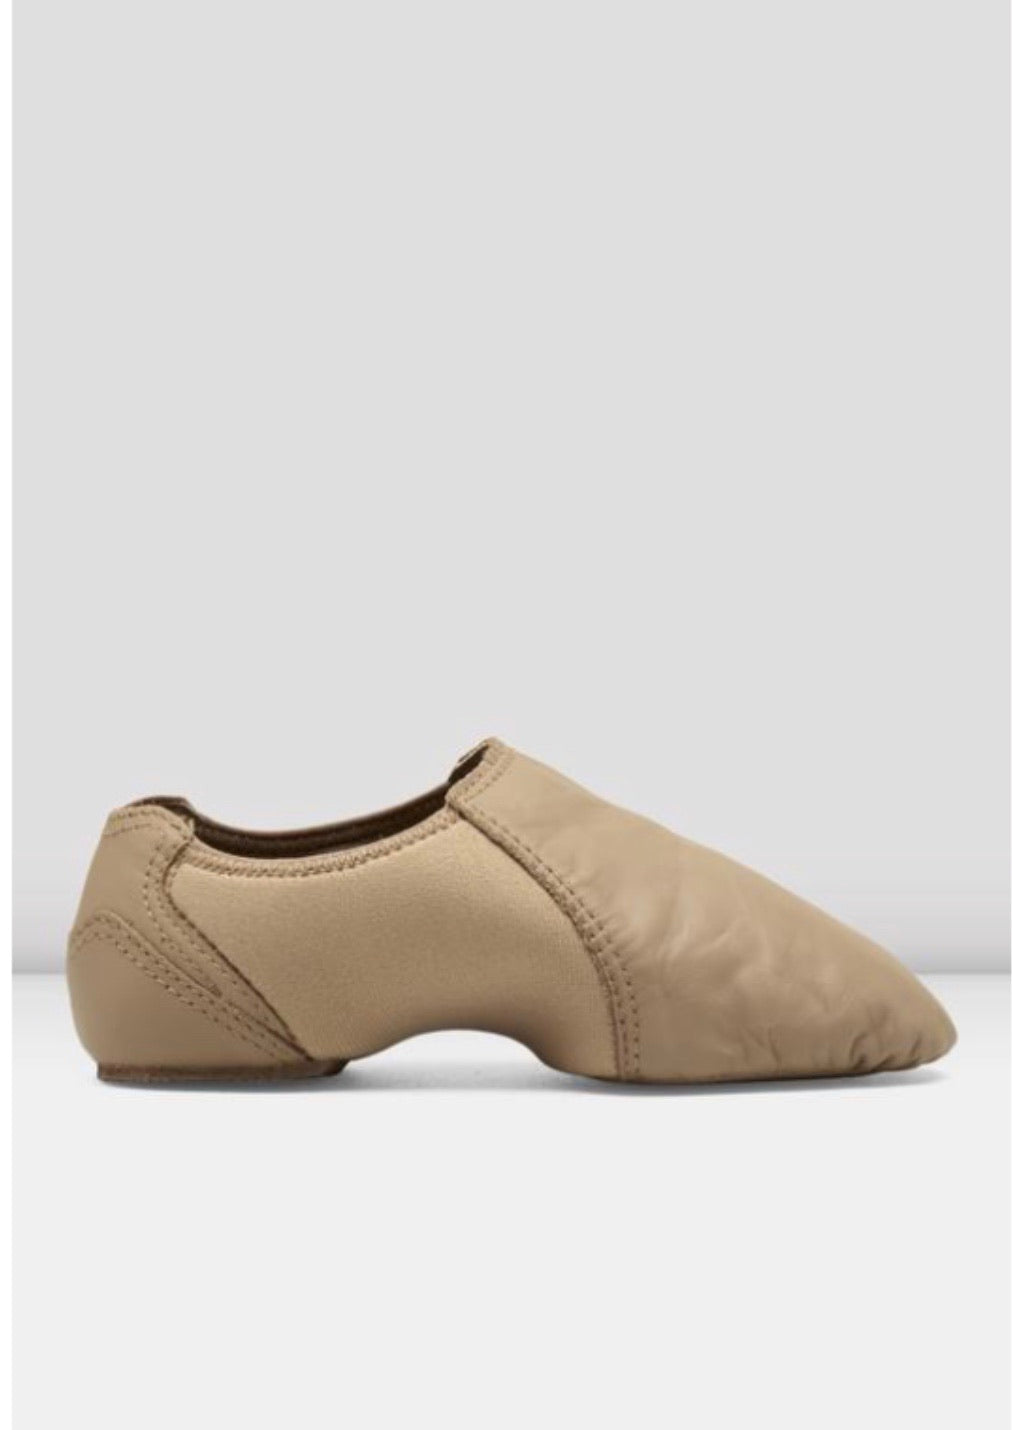 Bloch Spark Leather & Neoprene Jazz Shoes